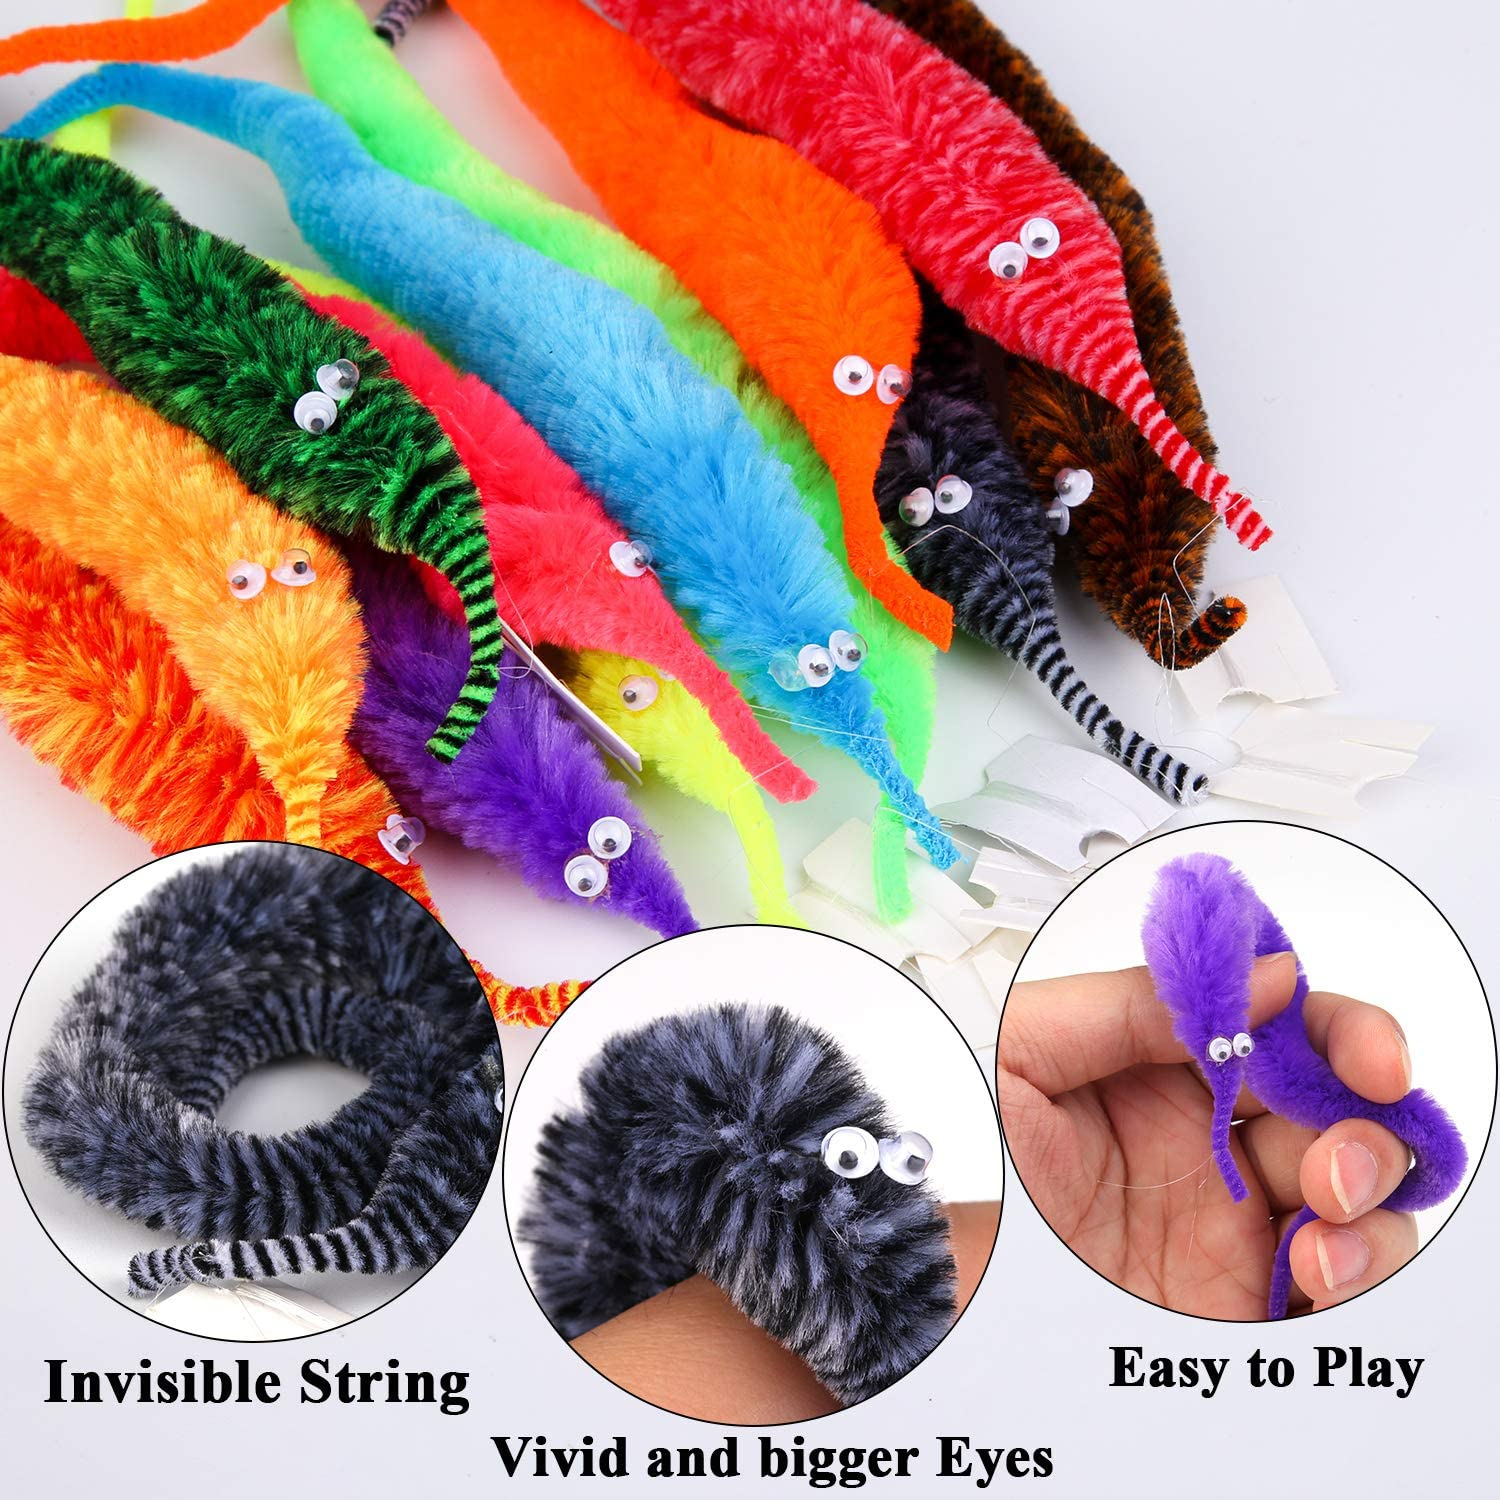 12 Colors Elcoho 60 Pieces Magic Worm Toys Magic Wiggly Twisty Fuzzy Worm for Carnival Party Supplies with an Organza Bag